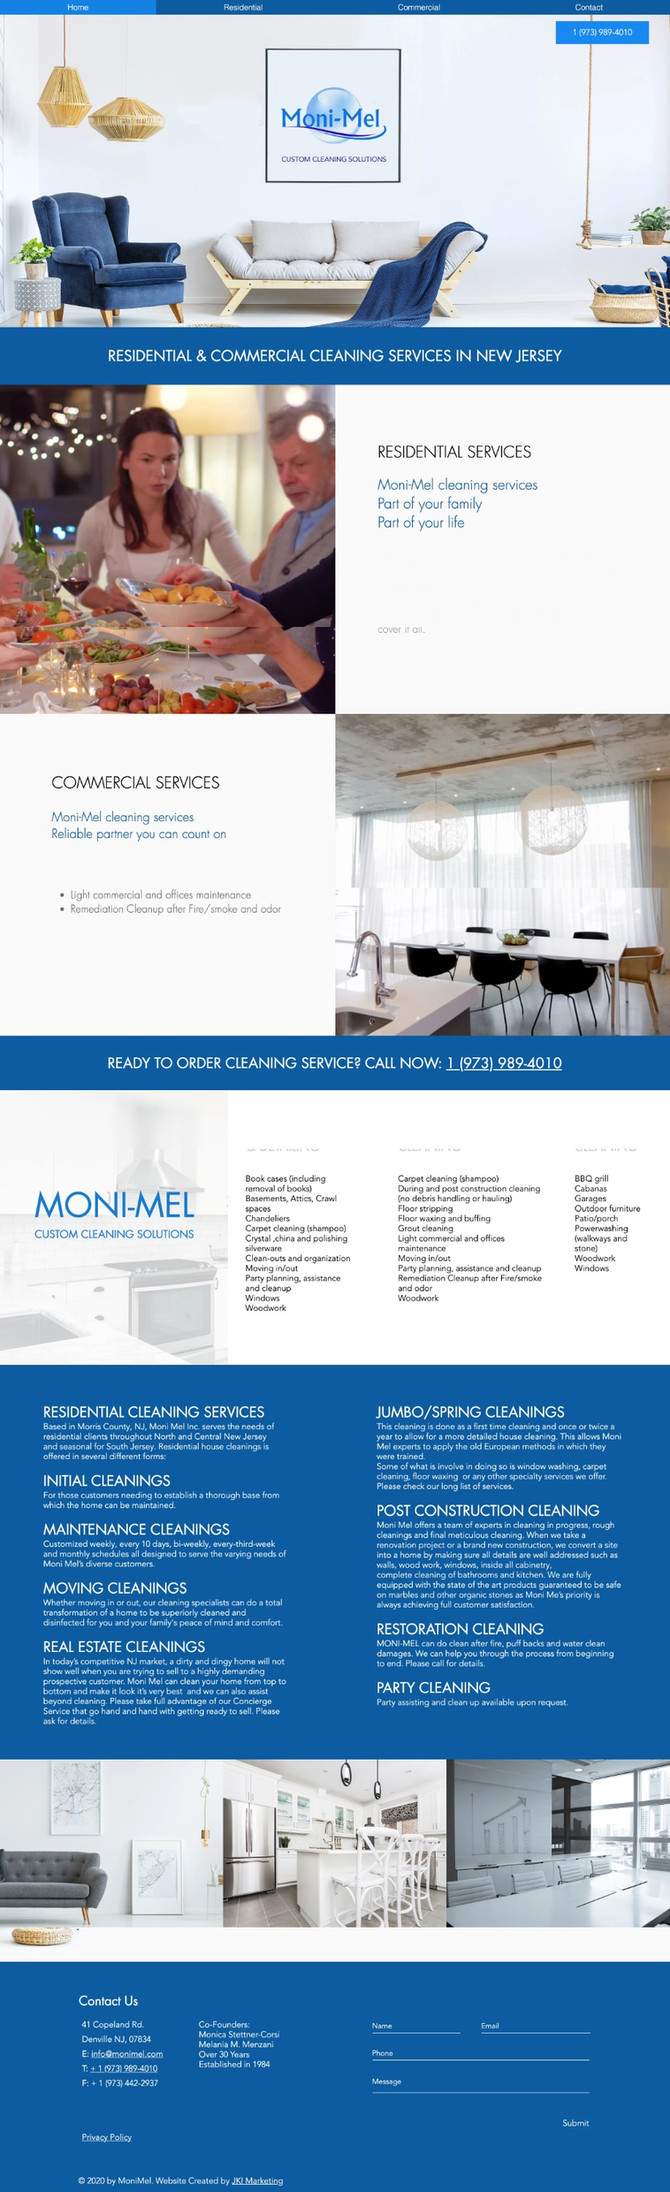 New Website Design for MoniMel